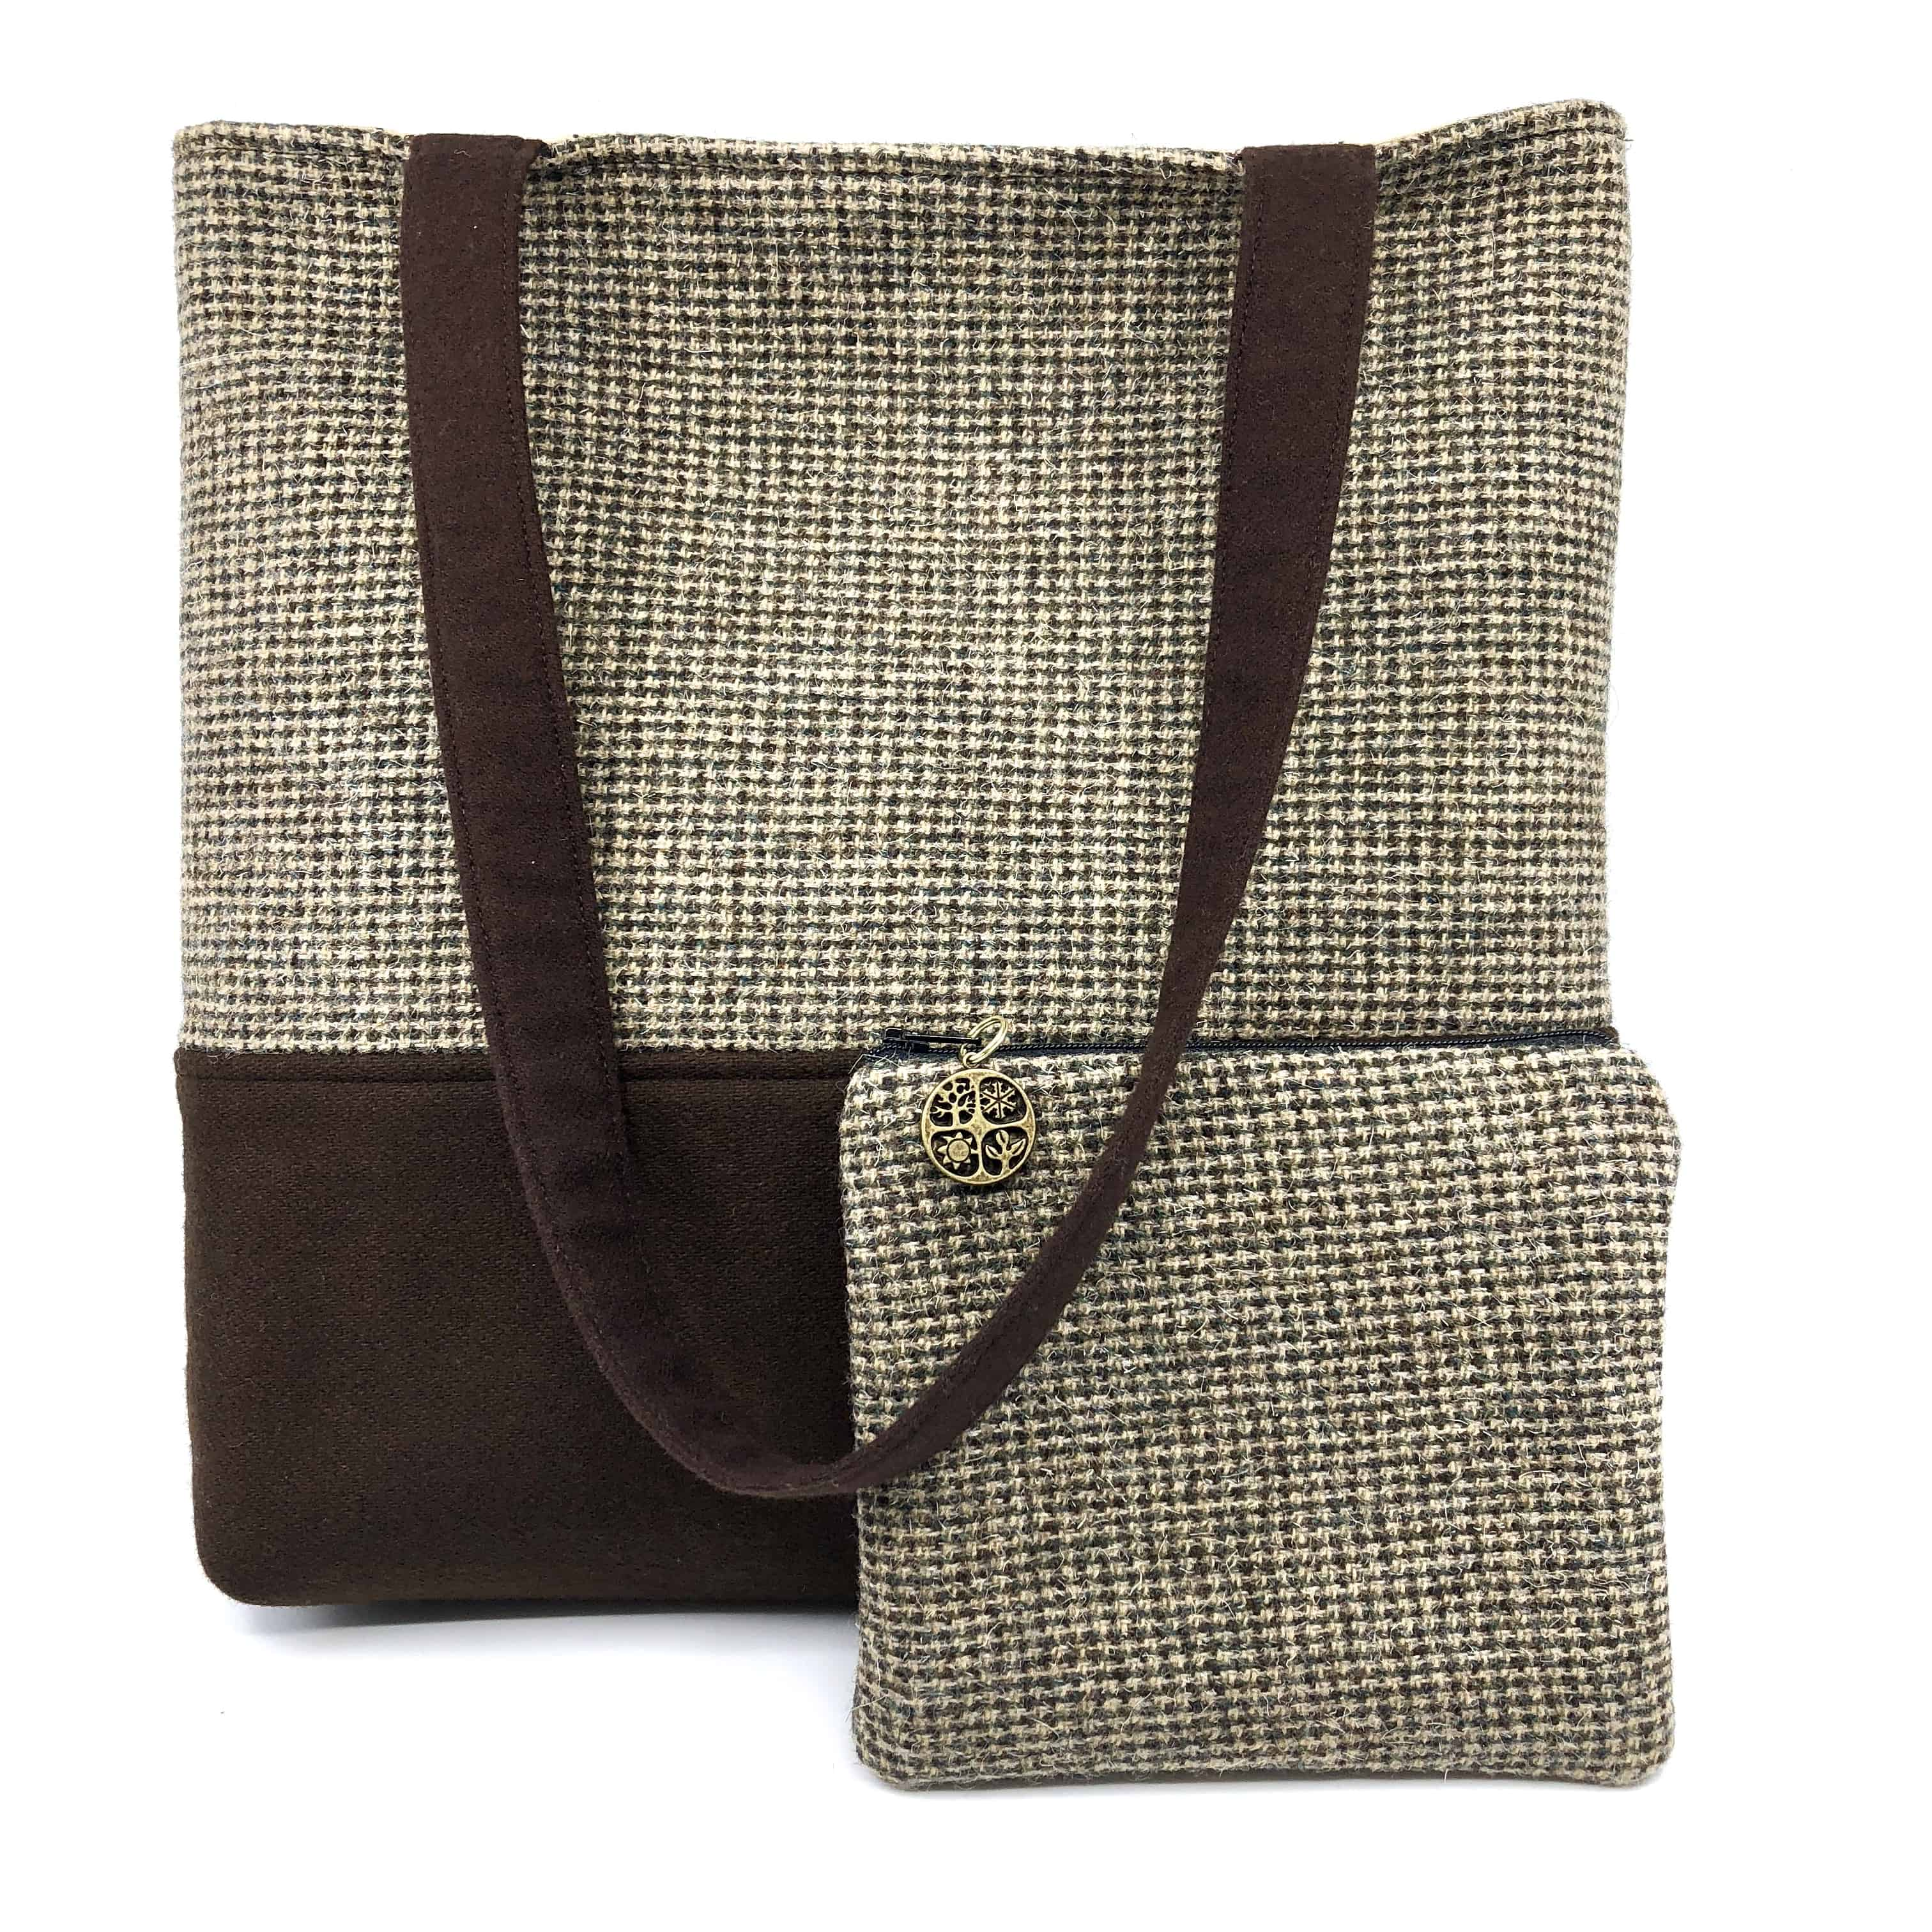 Terry Moher: Just Simple Bags